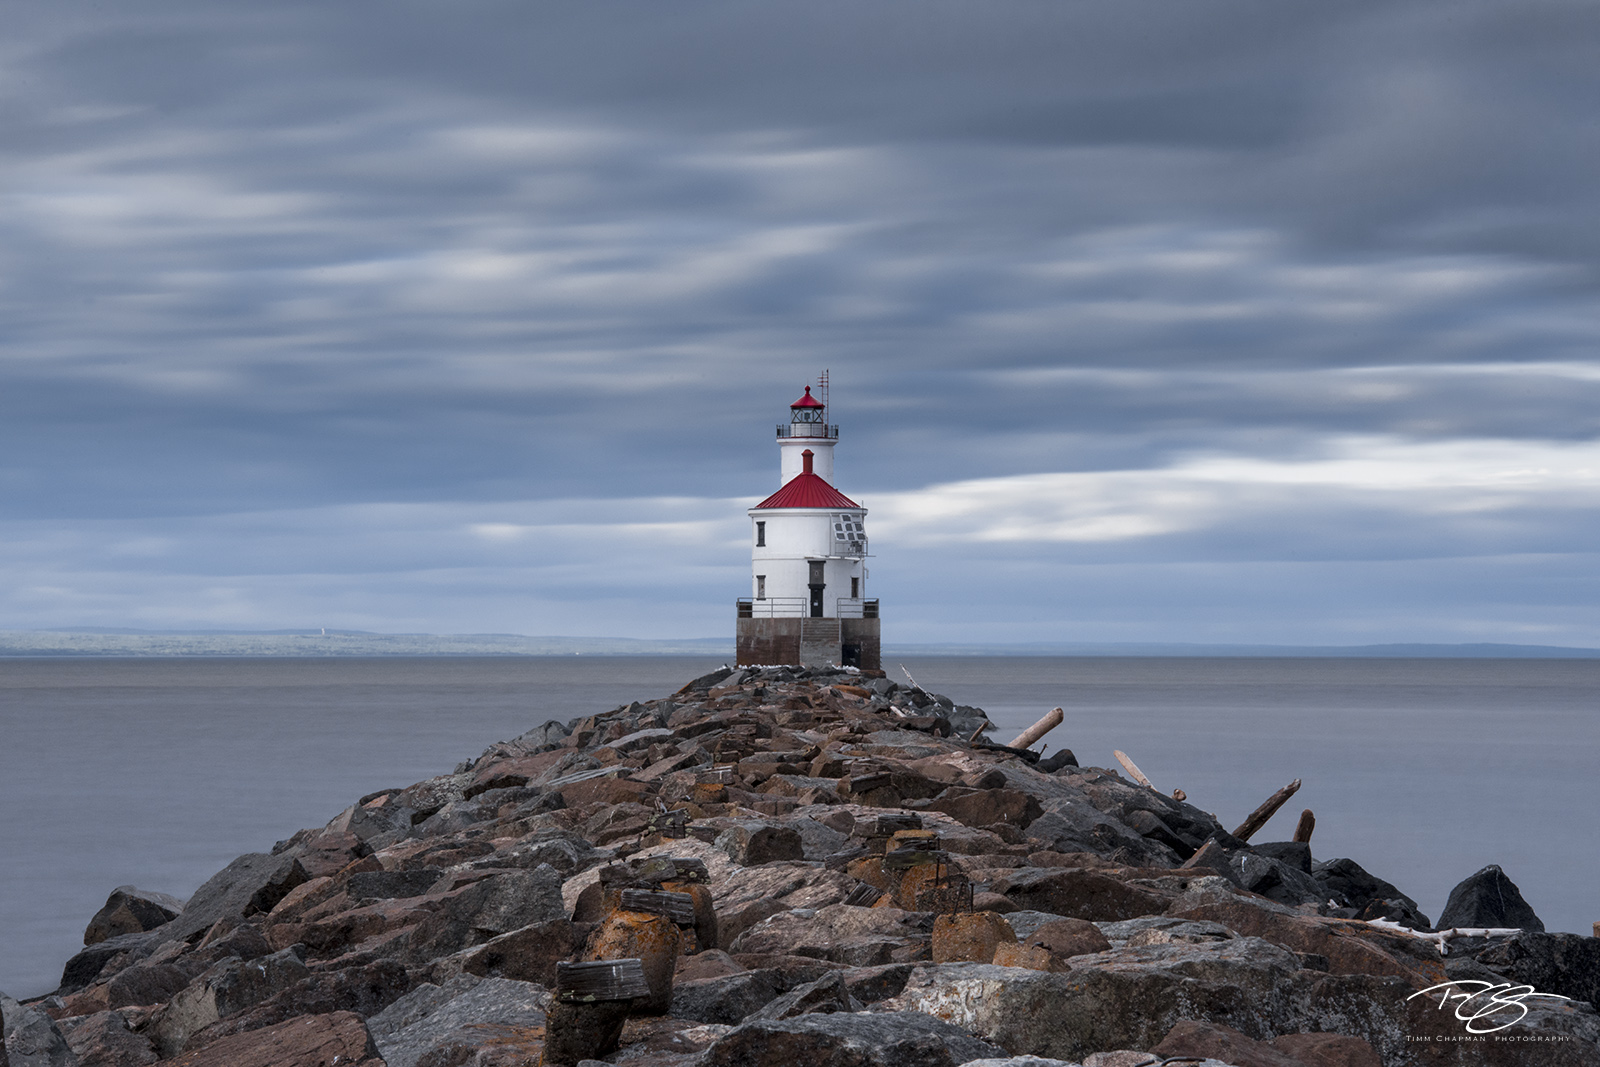 lighthouse, wisconsin point, lake superior, duluth, minnesota, wisconsin, light, beacon, rocky point, red, blue, pier, rocky, jetty, rugged coast, north shore, long exposure, stormy, cold, photo